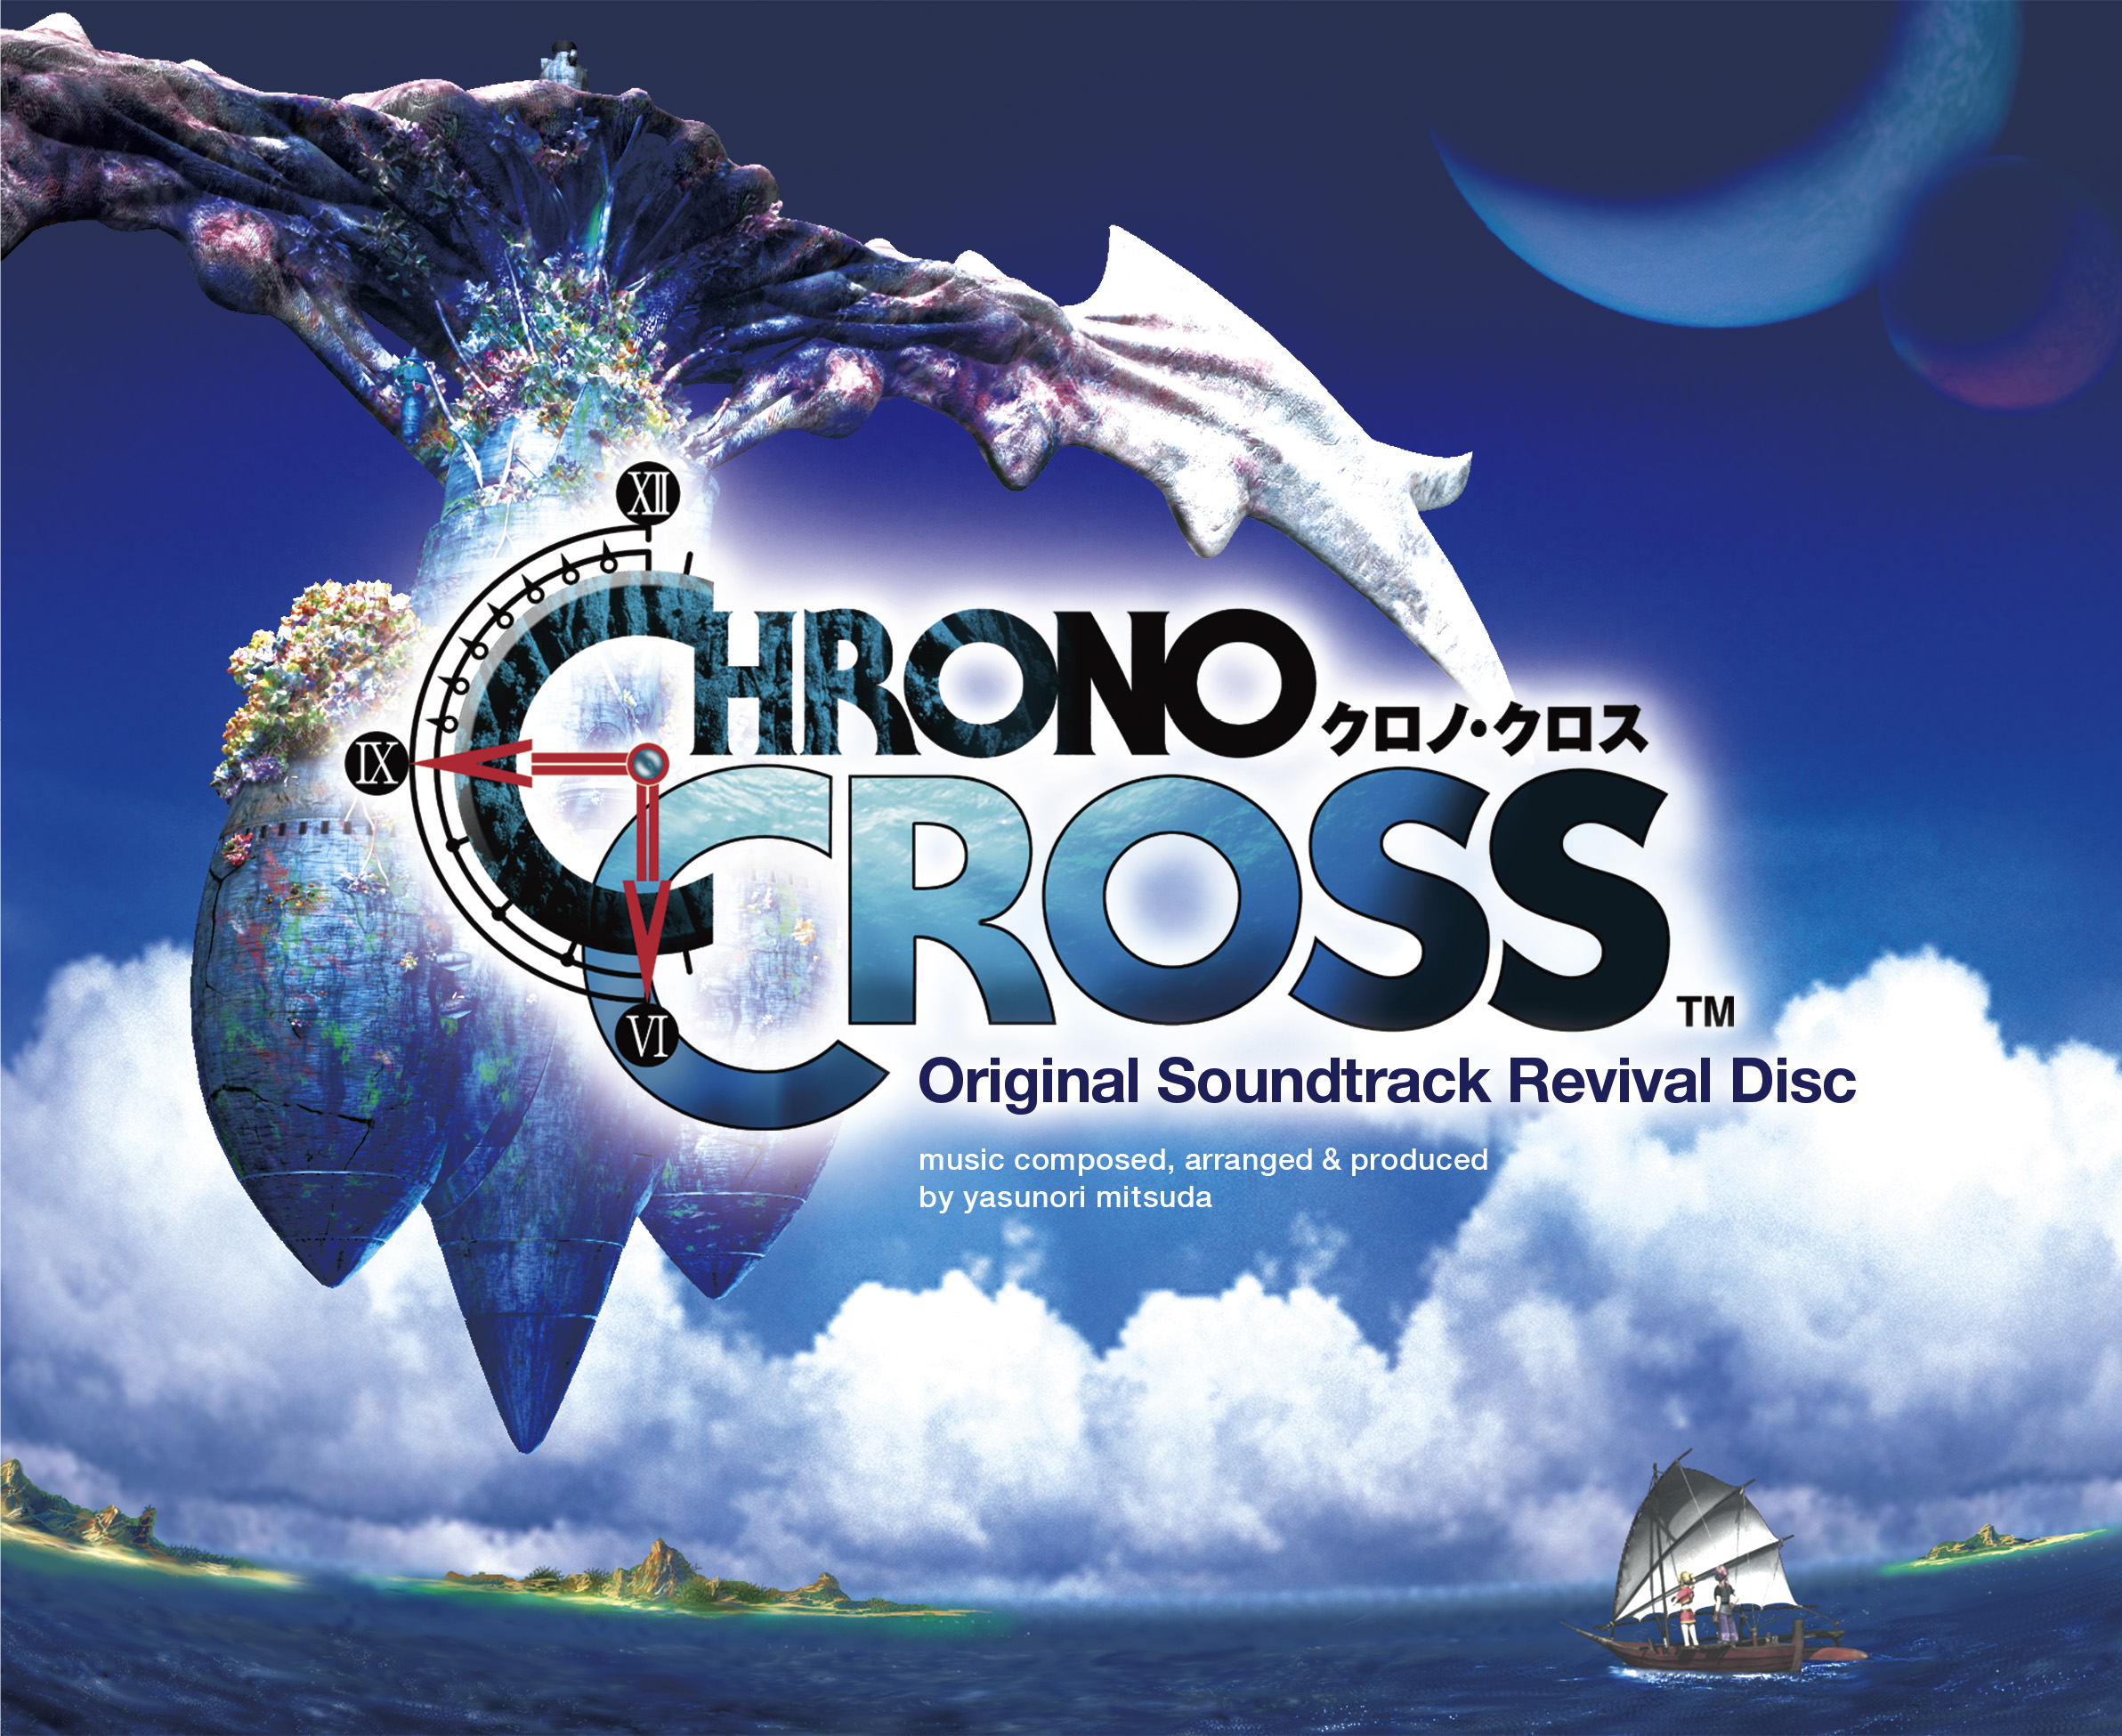 CHRONO CROSS Revival Disc